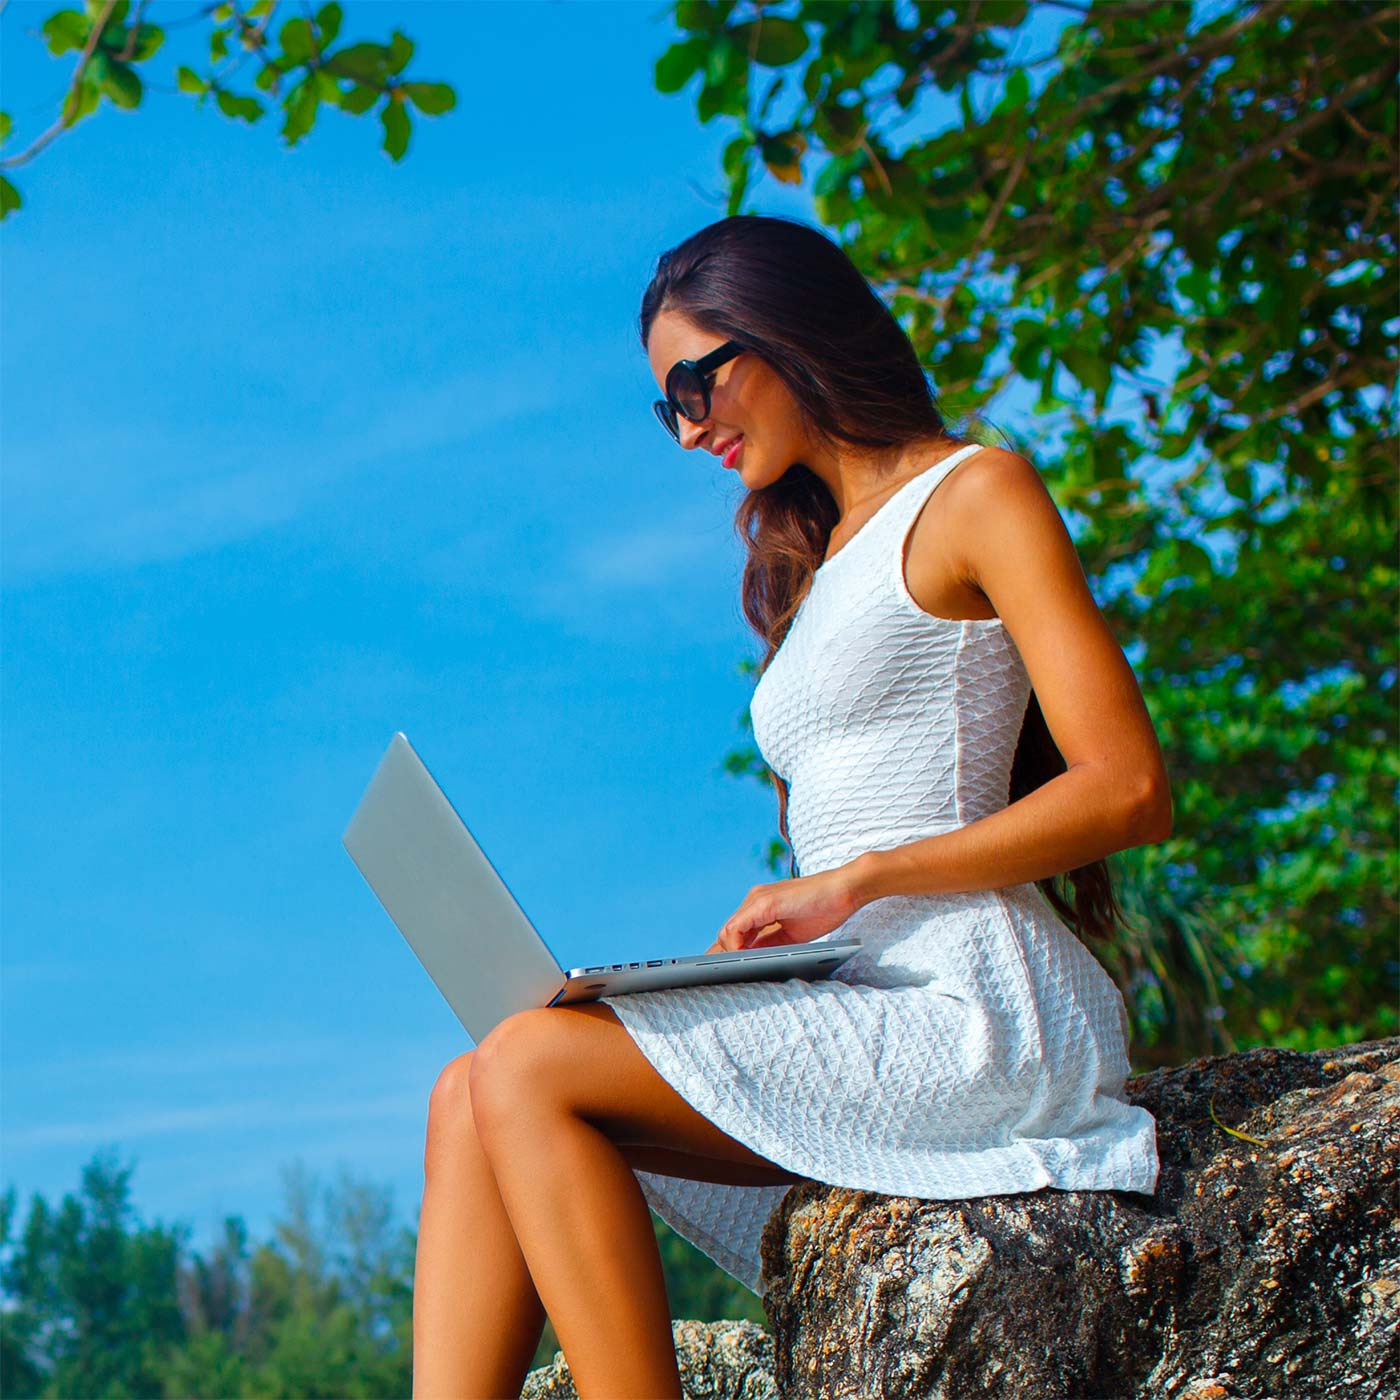 Run an ecommerce business anywhere in the world - Pure-Ecommerce.com can help!